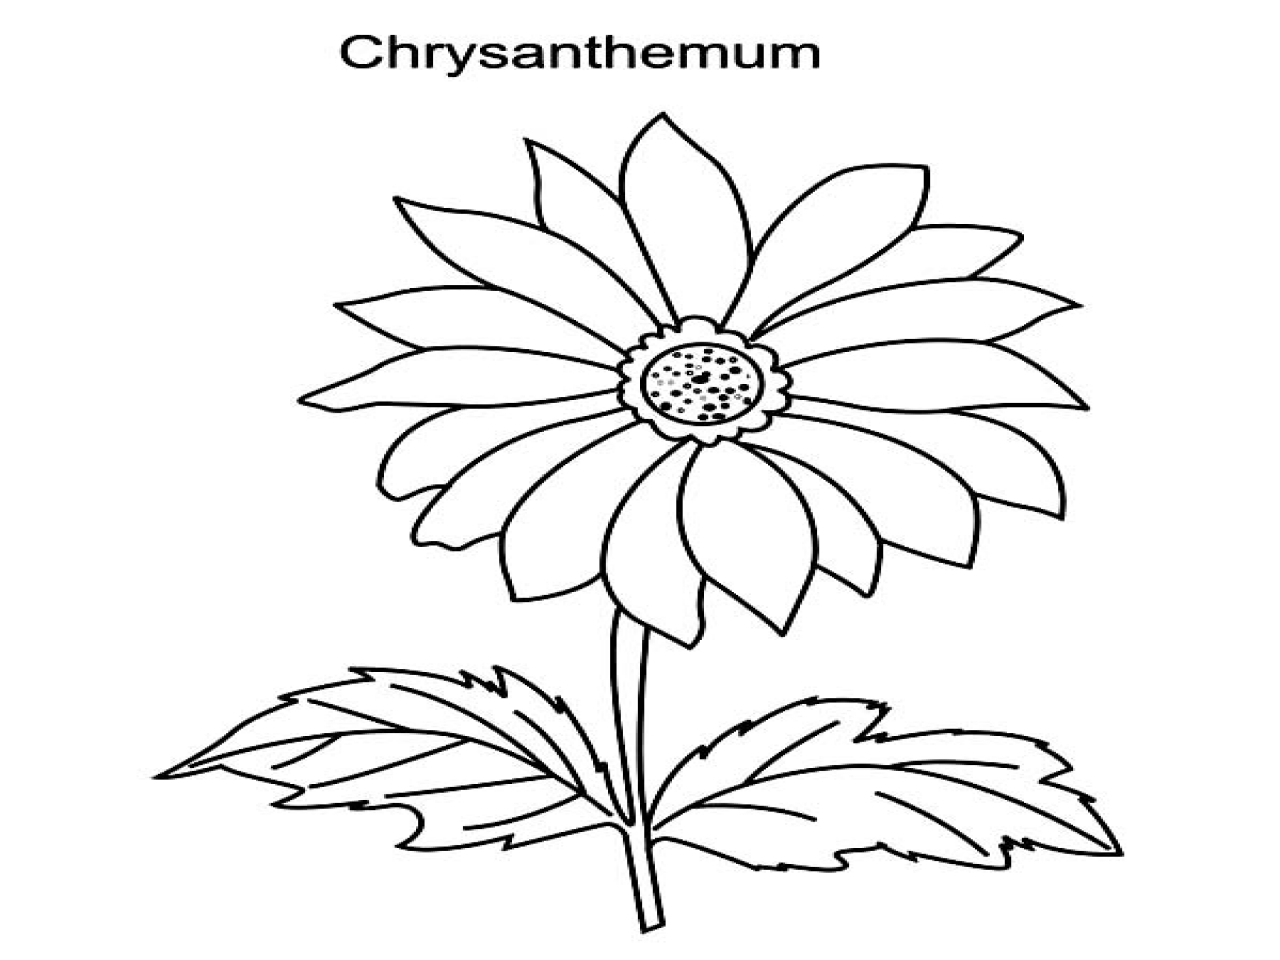 Chrysanthemum Flower Drawing at GetDrawings.com | Free for personal ...